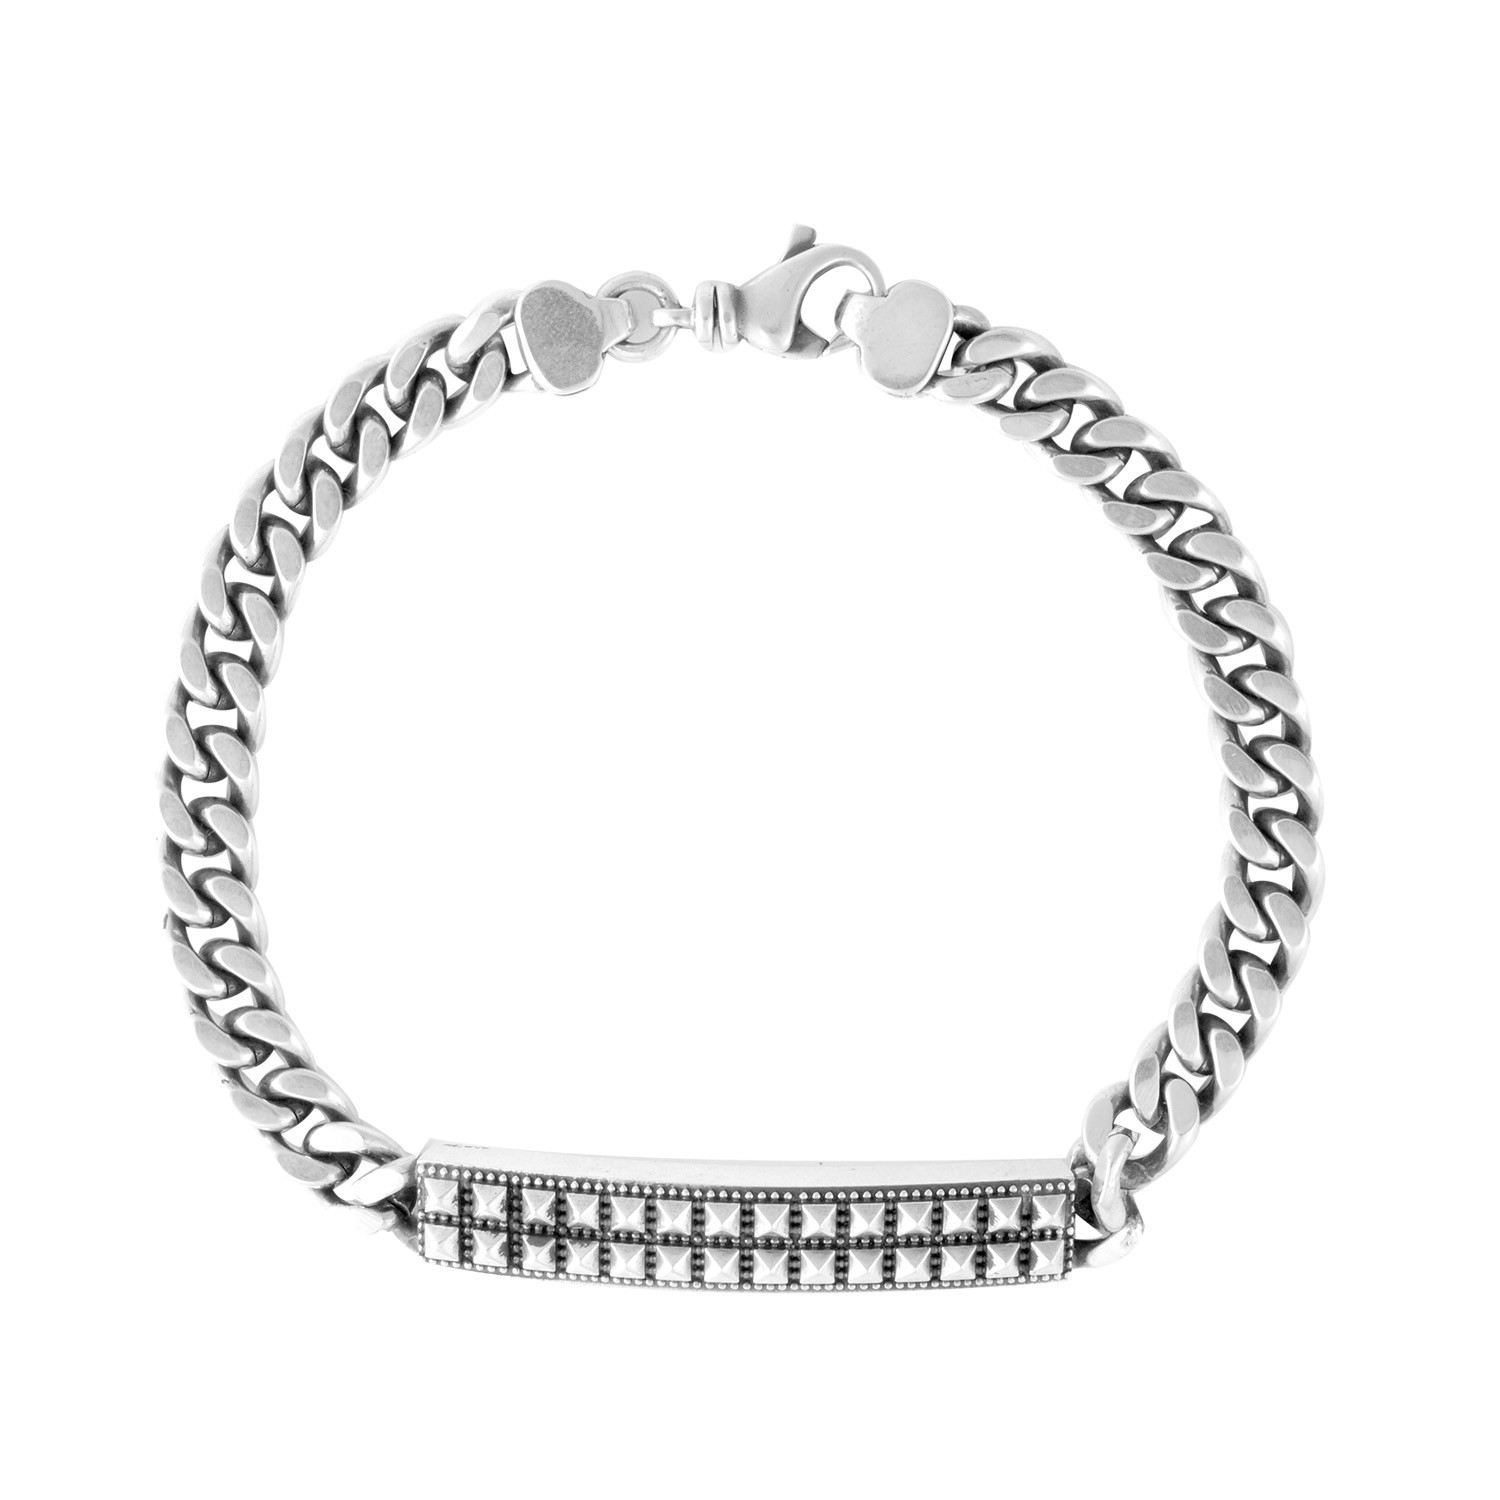 Curb link id bracelet king baby touch of modern for King baby jewelry sale